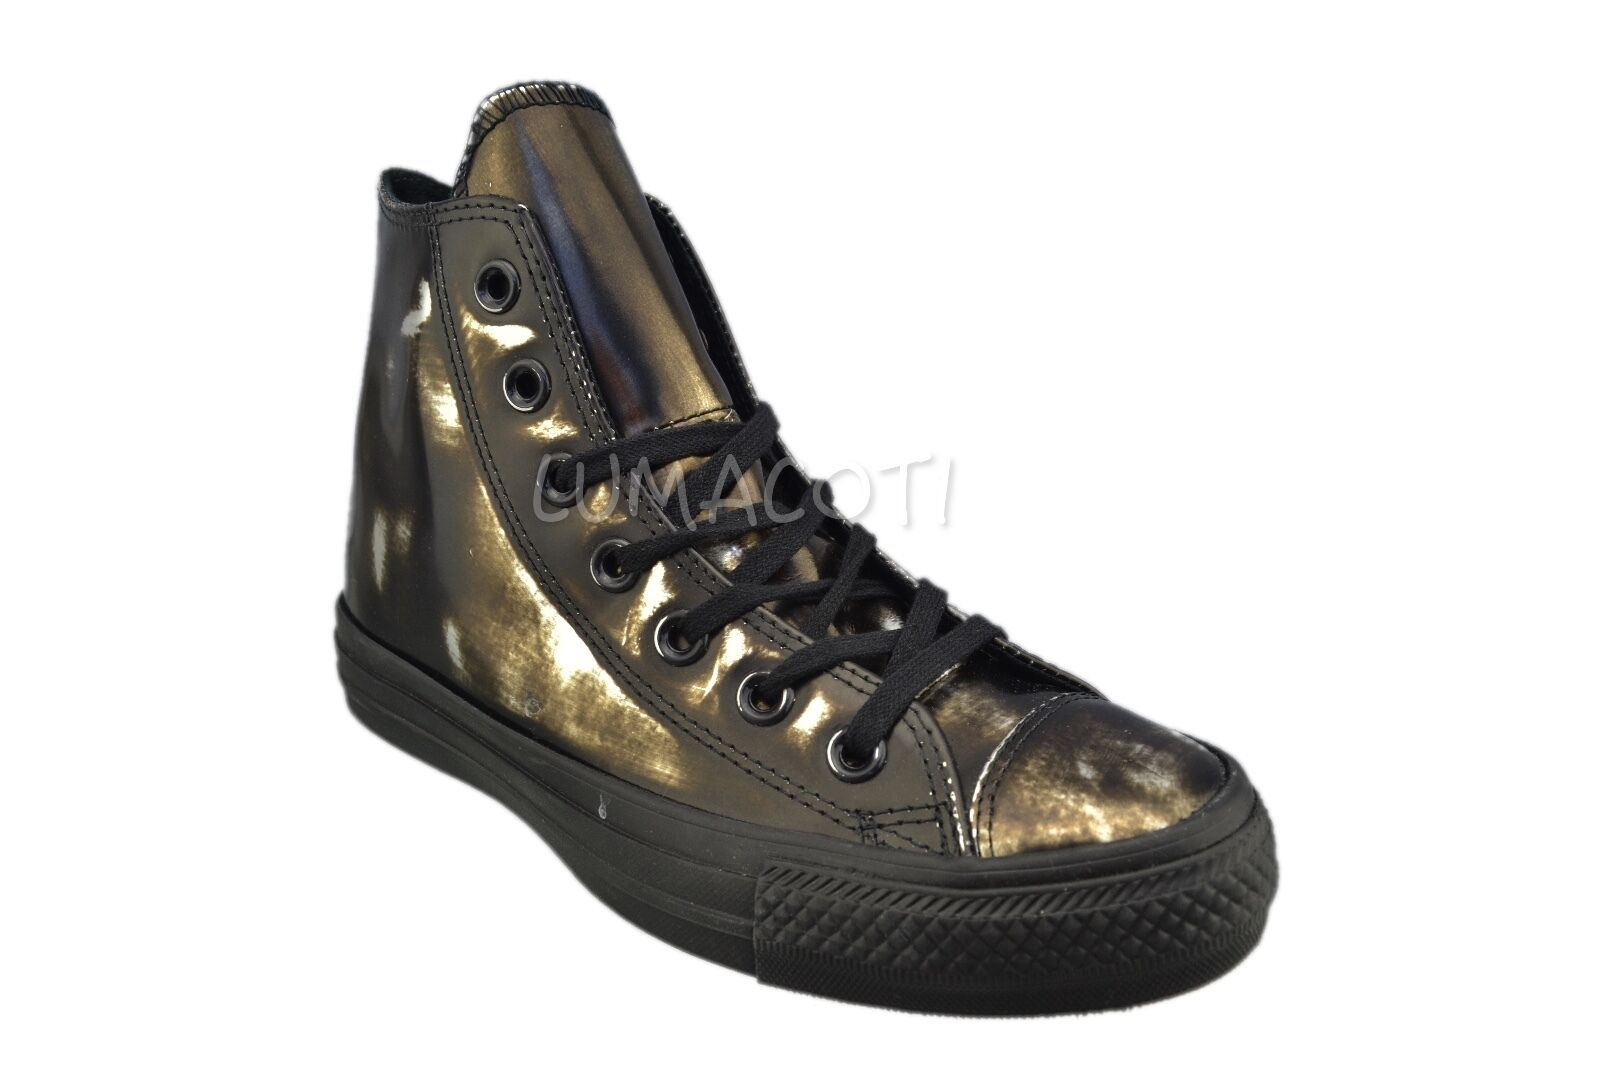 Converse Womens Womens Womens Chuck Taylor All Star Brush Off Leather High Top Black 553301C 925125